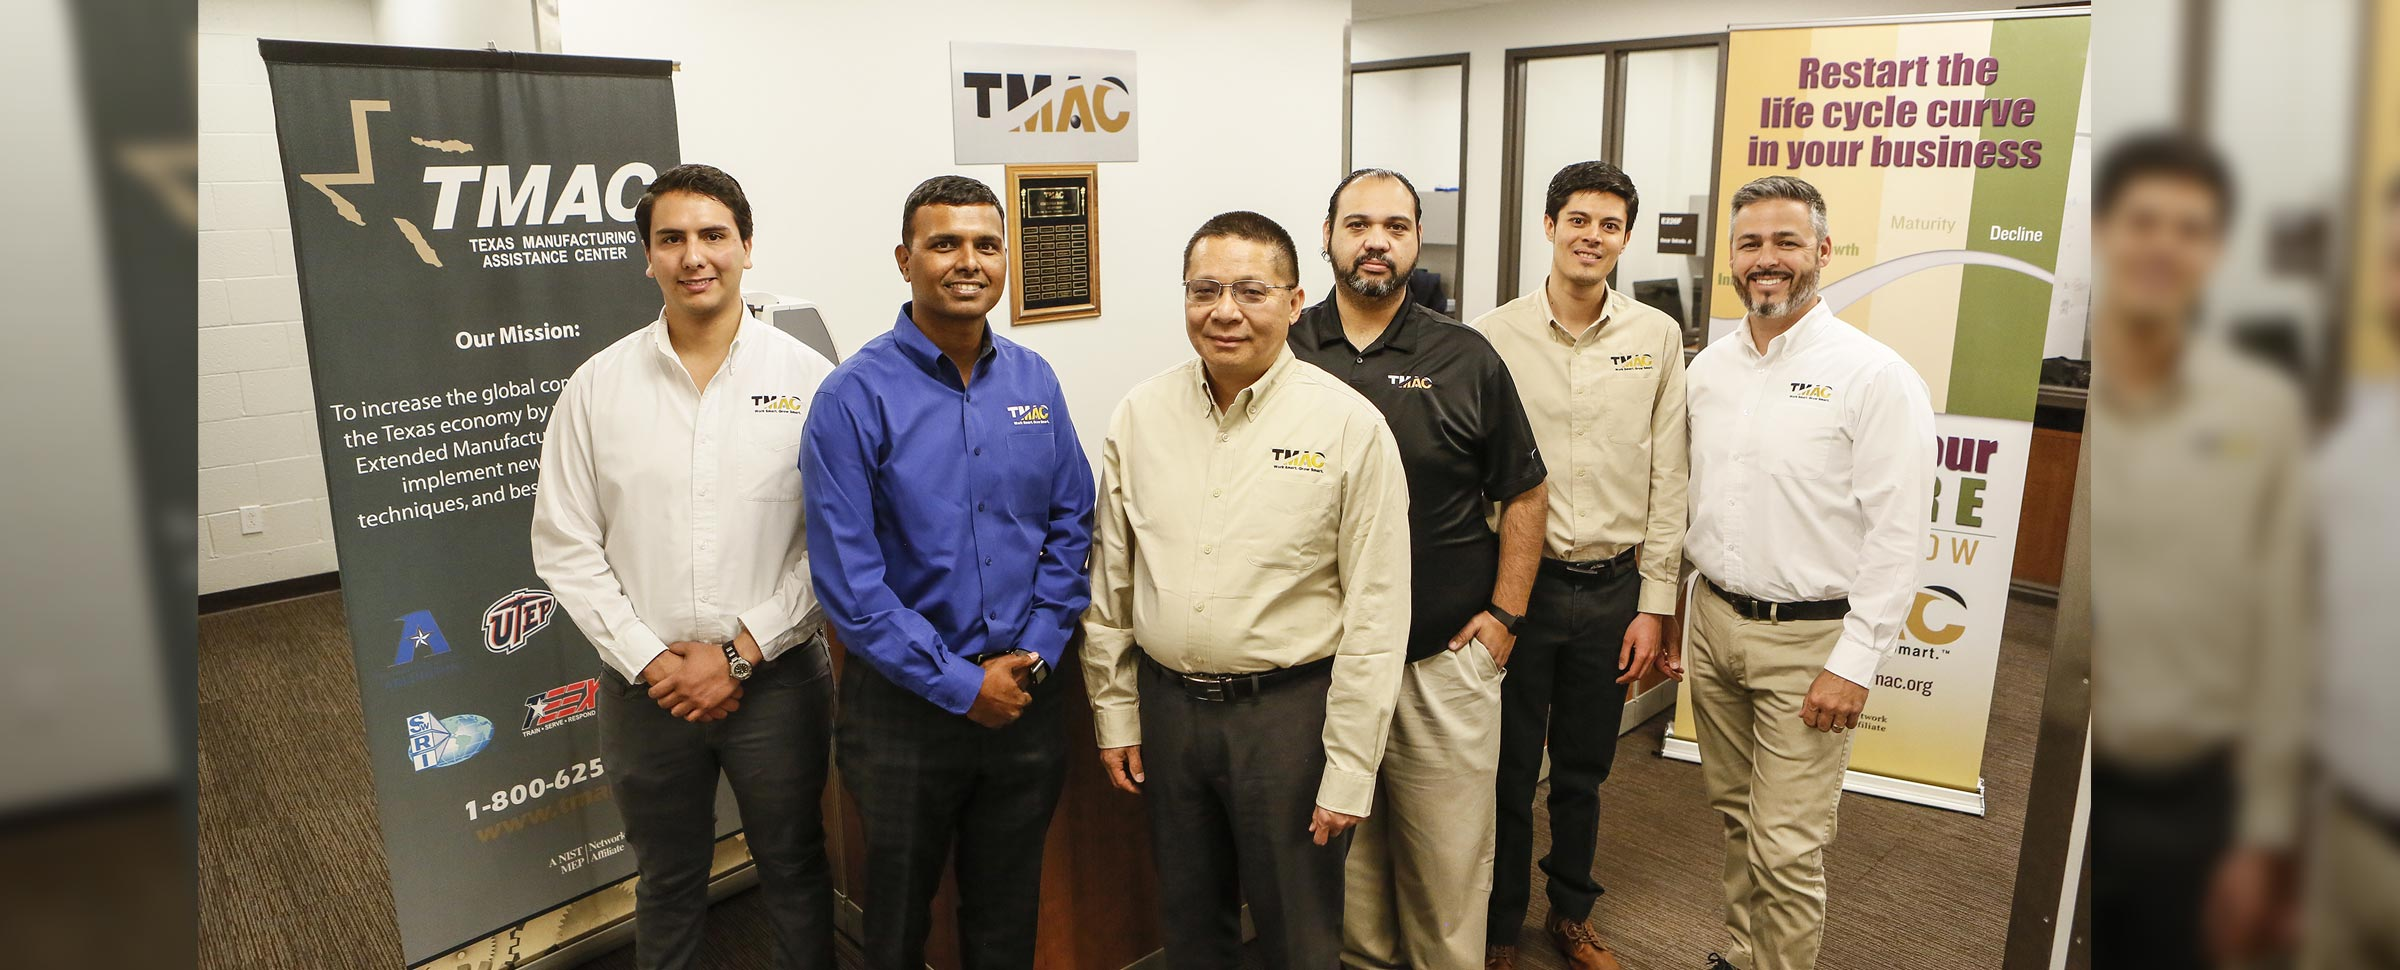 TMAC UTEP Helps Identify Medical Equipment Suppliers to Support COVID-19 Response